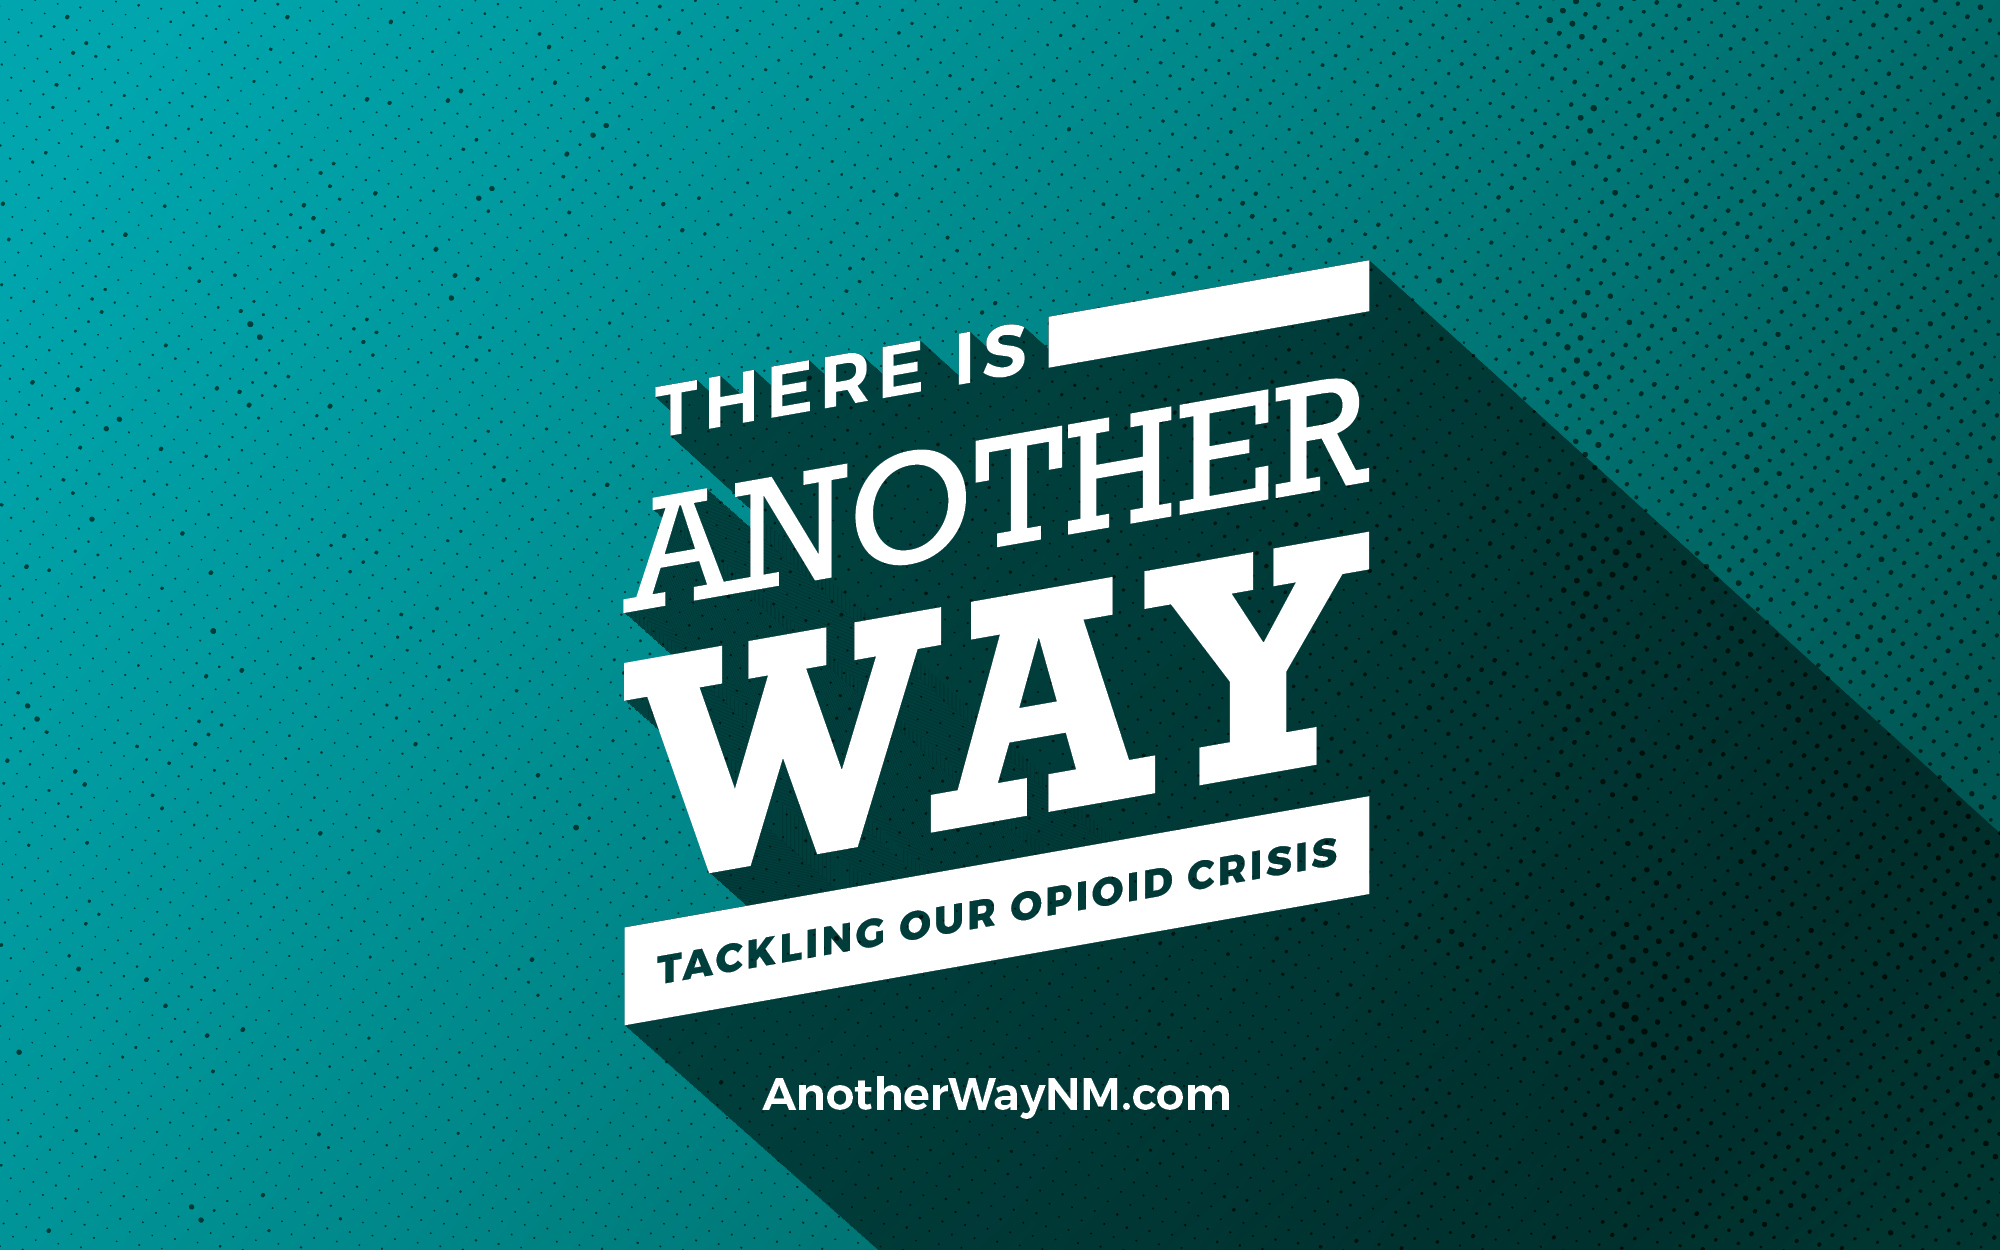 Another Way Campaign – NMDOH